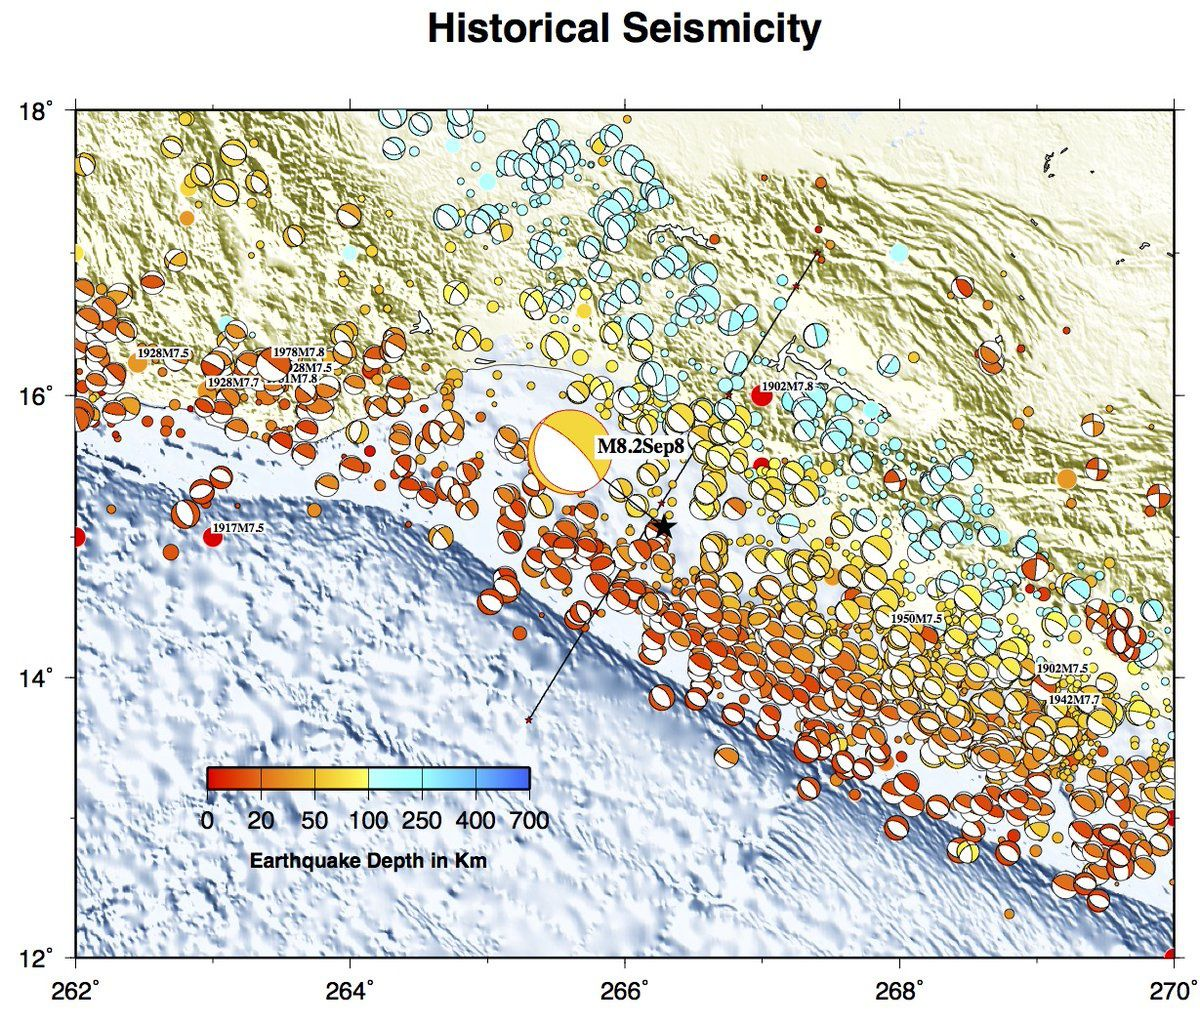 Historique de la sismicité au niveau de la côte sud du Mexique  - Historical seismicity in the Mexico's southern coast.  (Figure modified from USGS by  Jascha Polet) / CSEM.